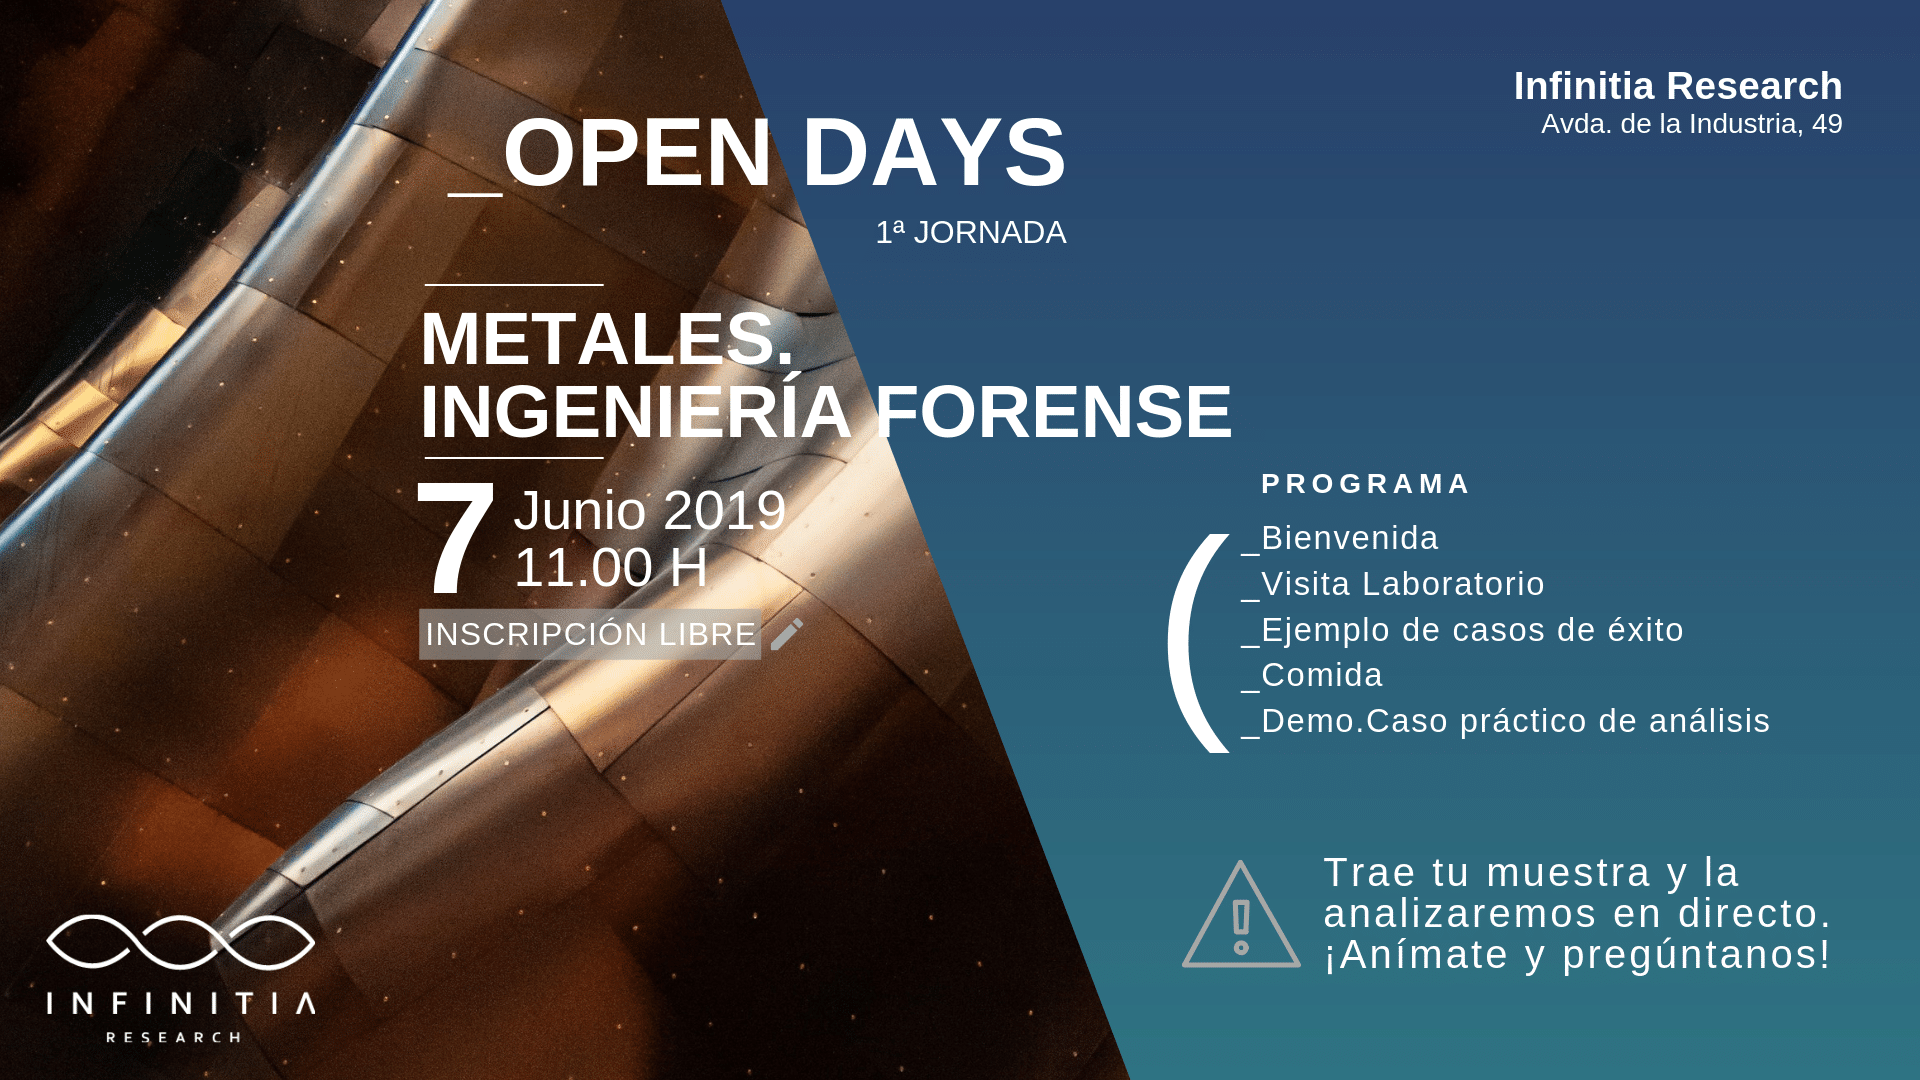 OPEN DAYS. METALES – INGENIERÍA FORENSE